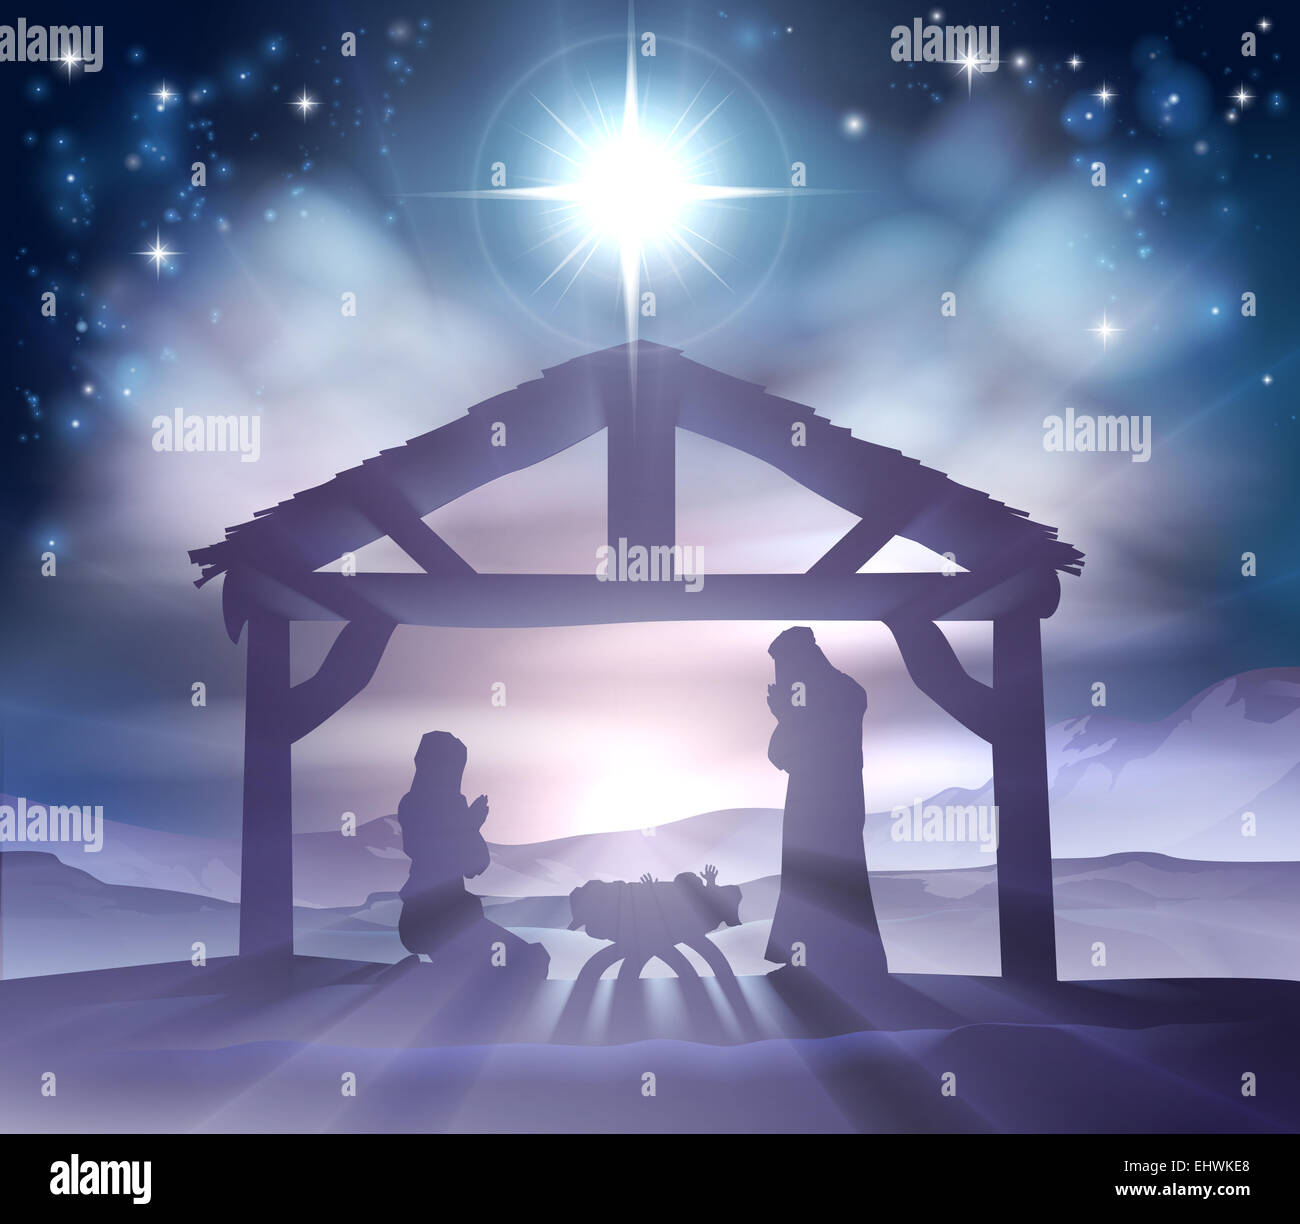 Christmas Stable Background.Traditional Christian Christmas Nativity Scene Of Baby Jesus